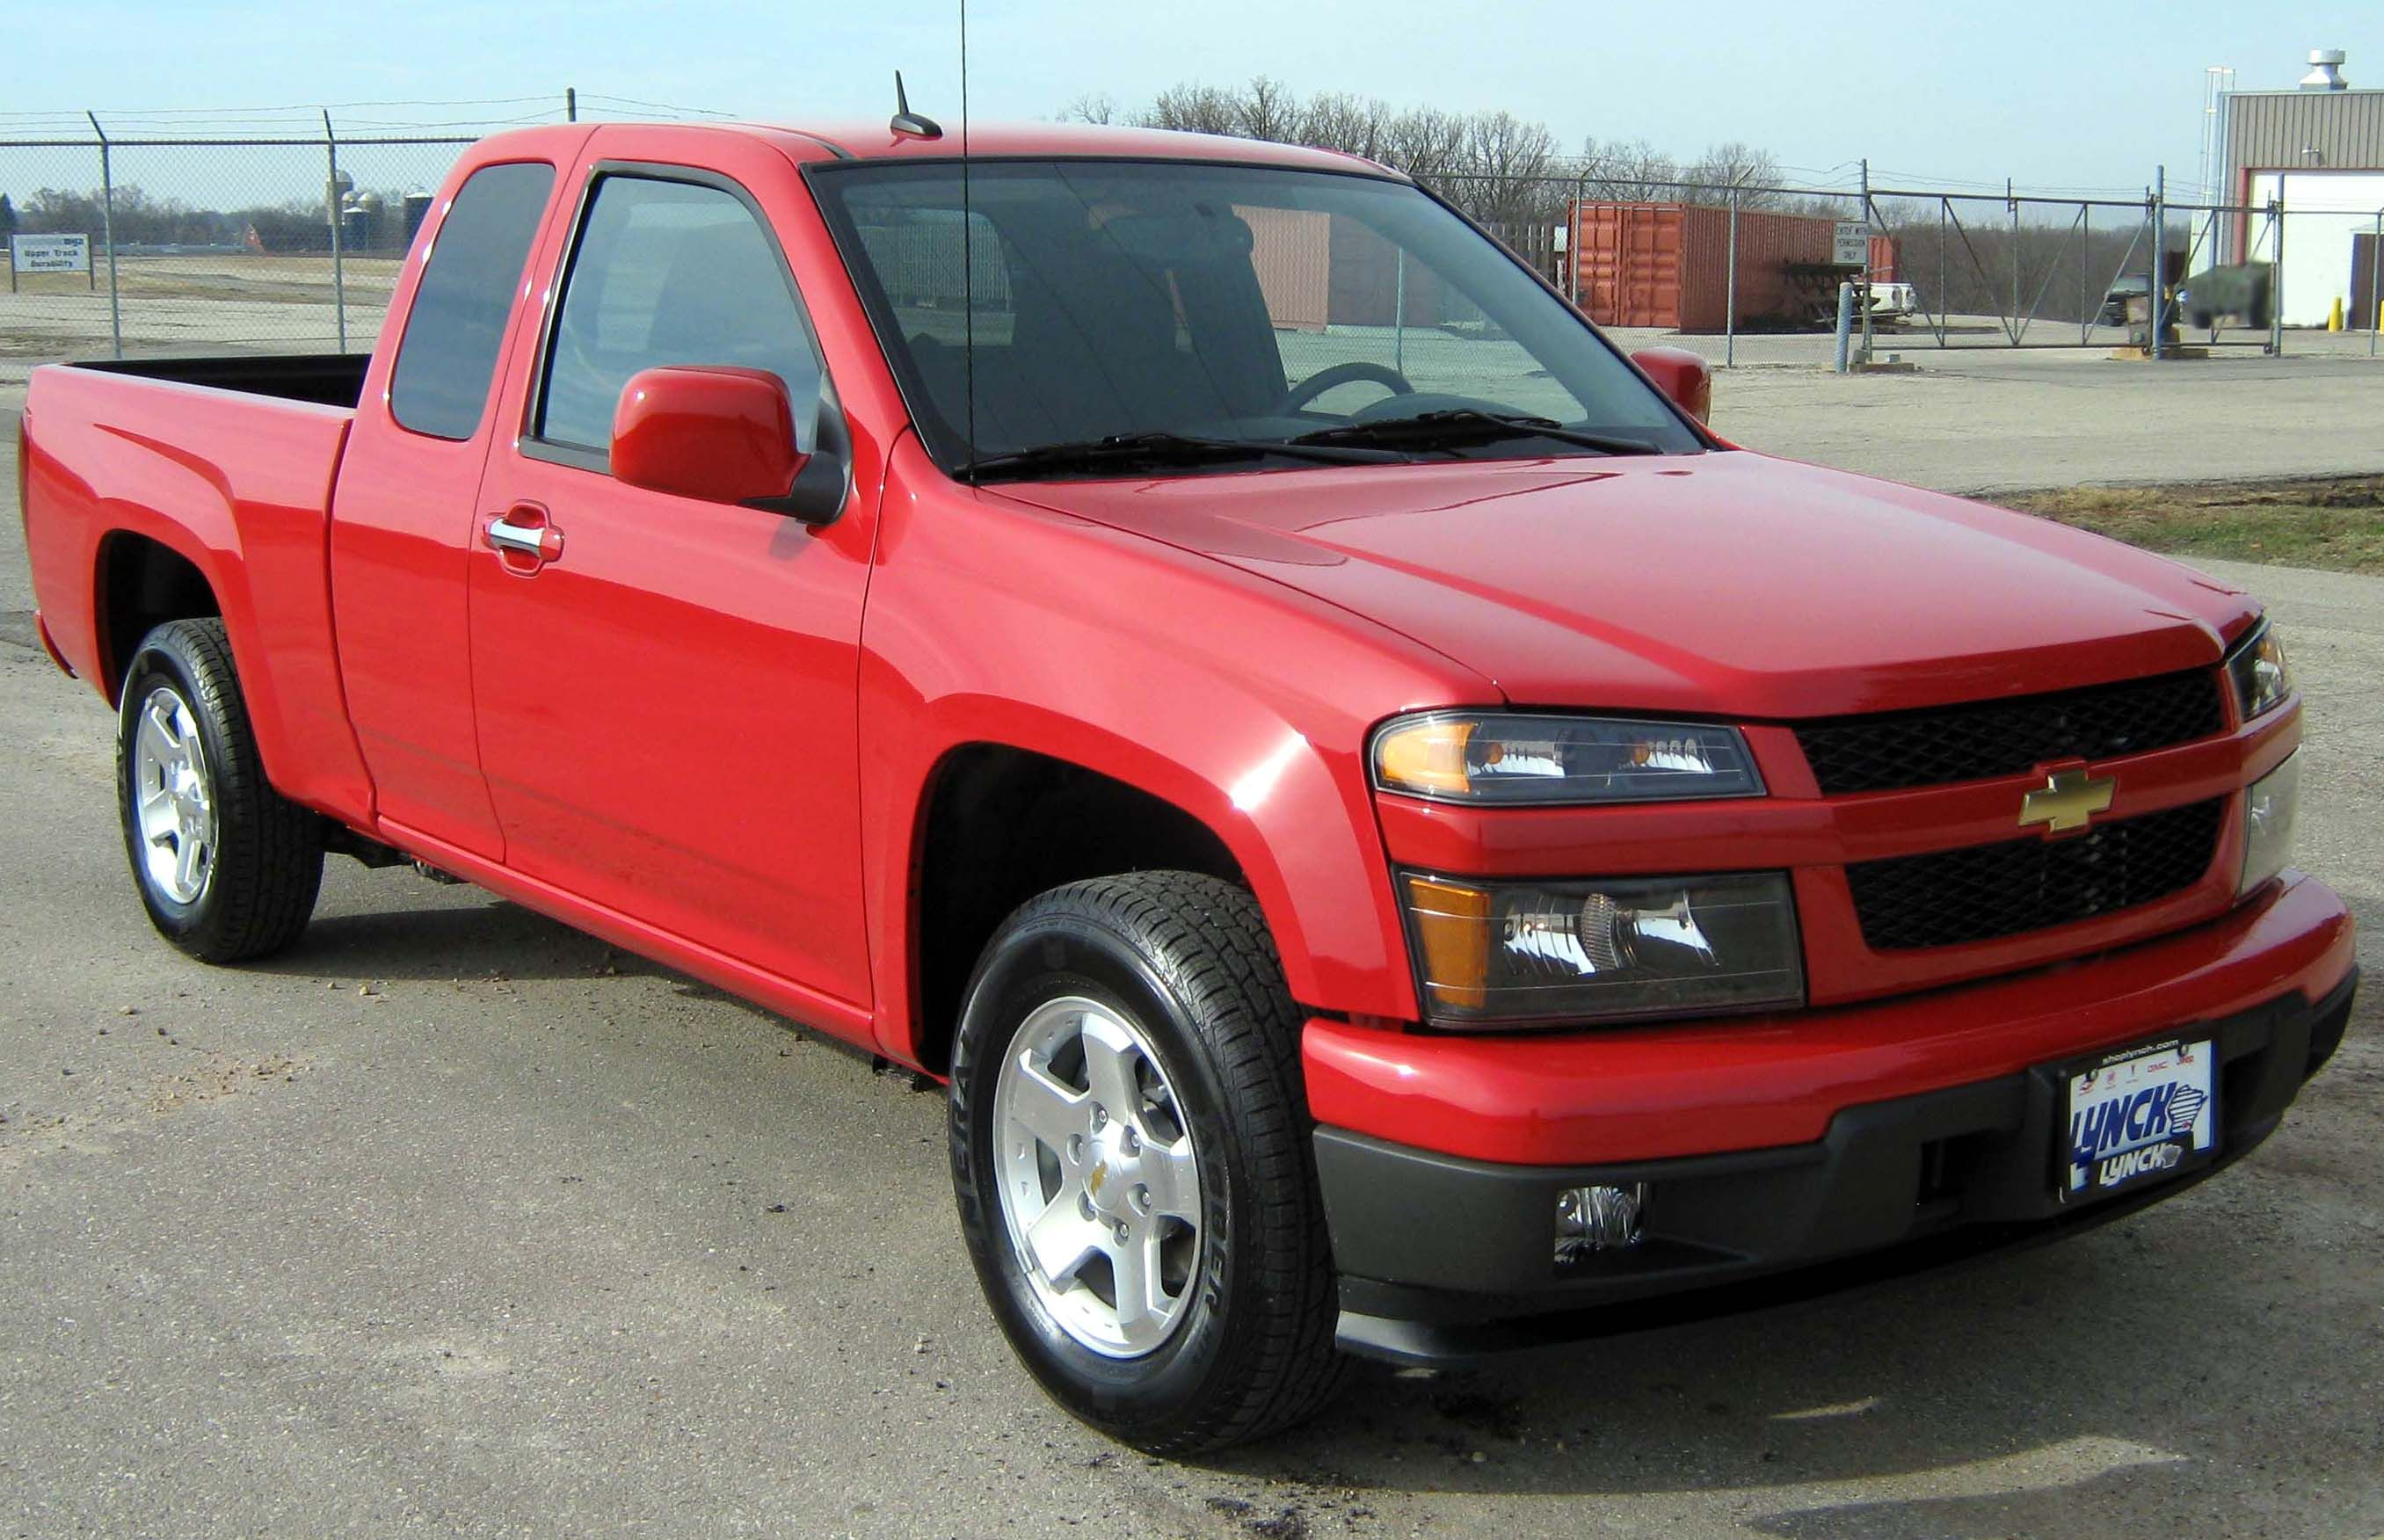 Best 25 chevy colorado mpg ideas on pinterest 2015 chevy colorado chevy colorado price and new chevy colorado